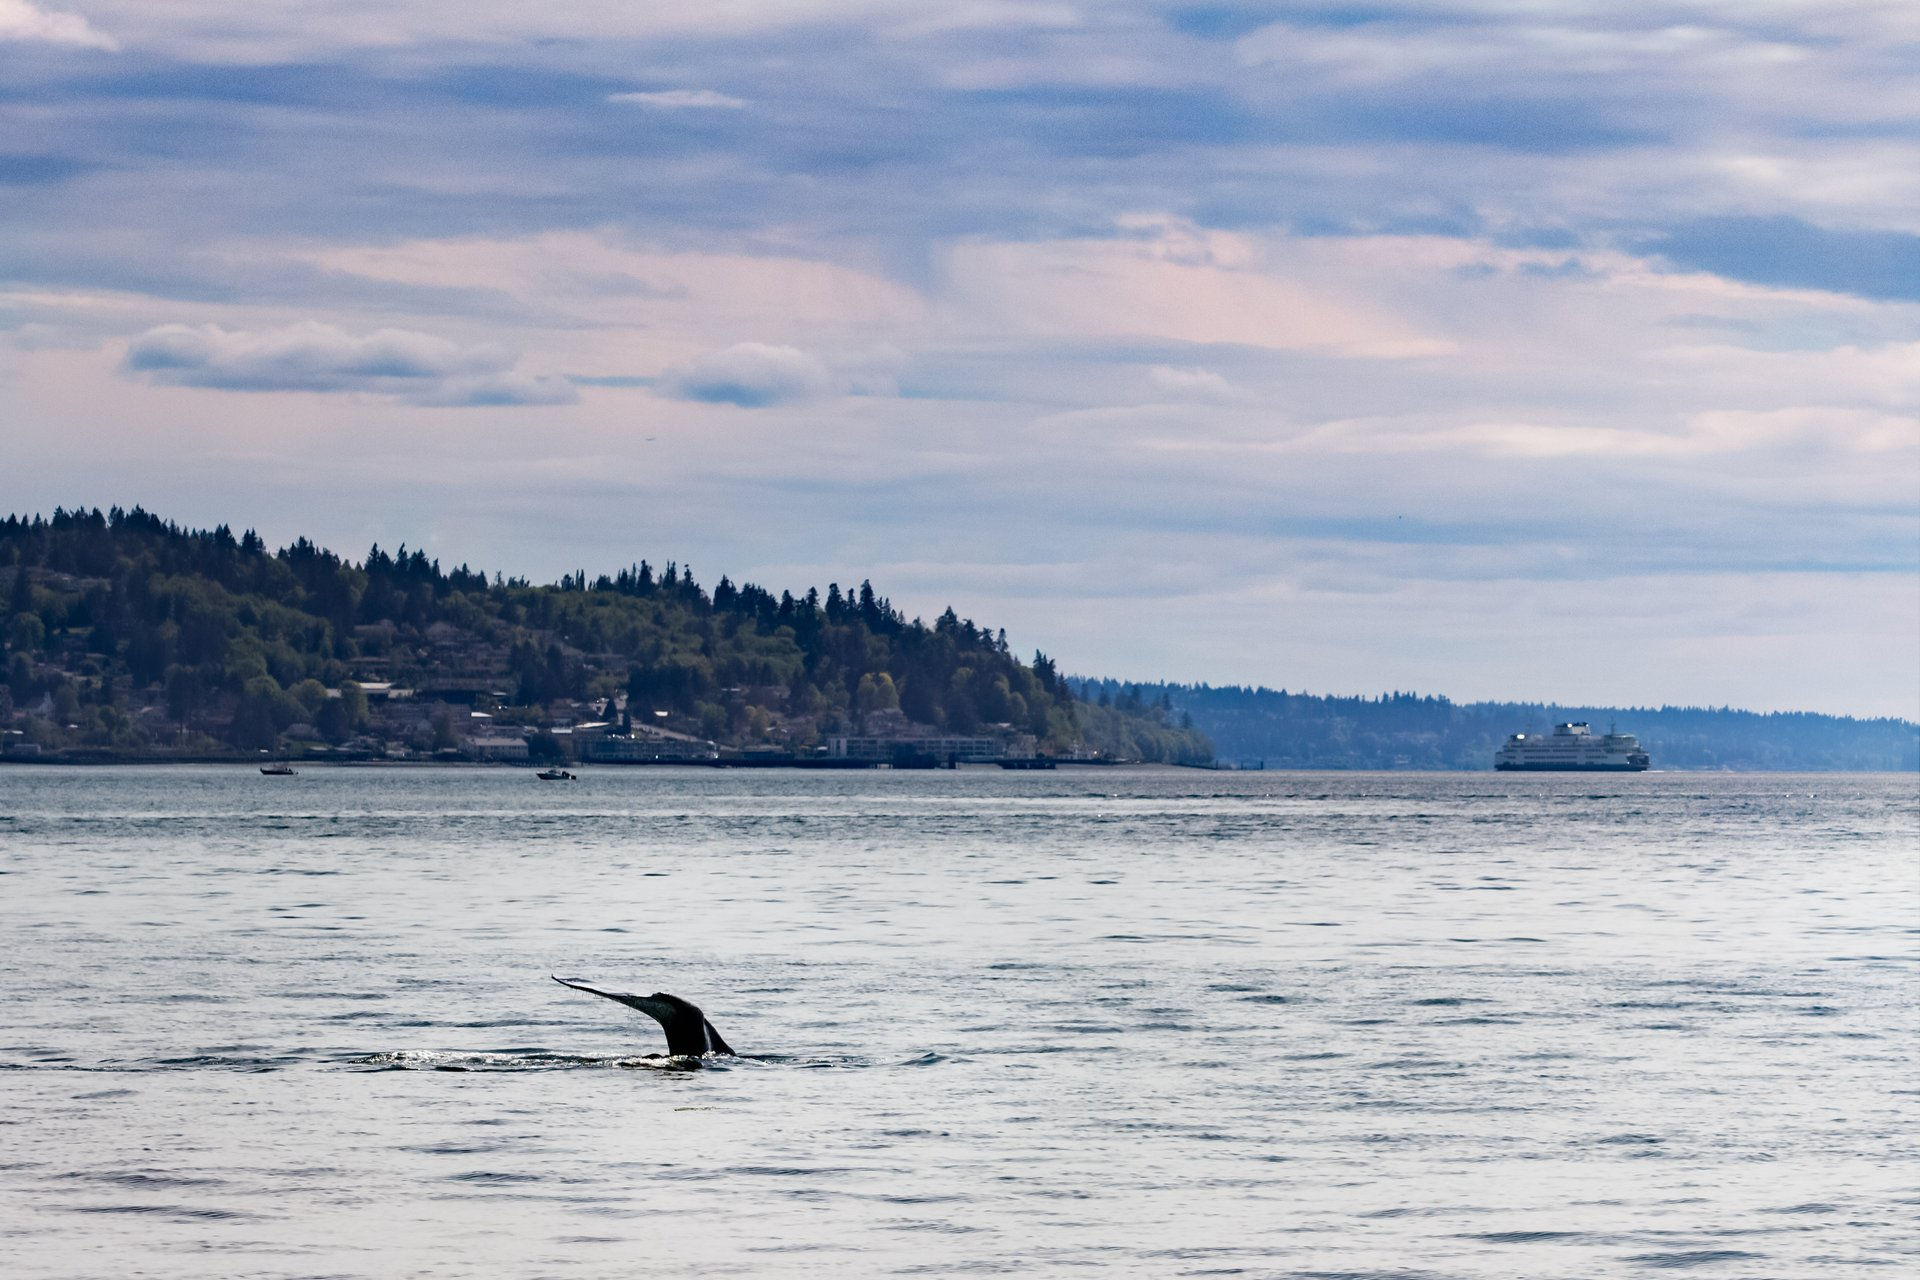 Fluke of gray whale disappears into the Puget Sound with a a Washington State Ferry in background 2020